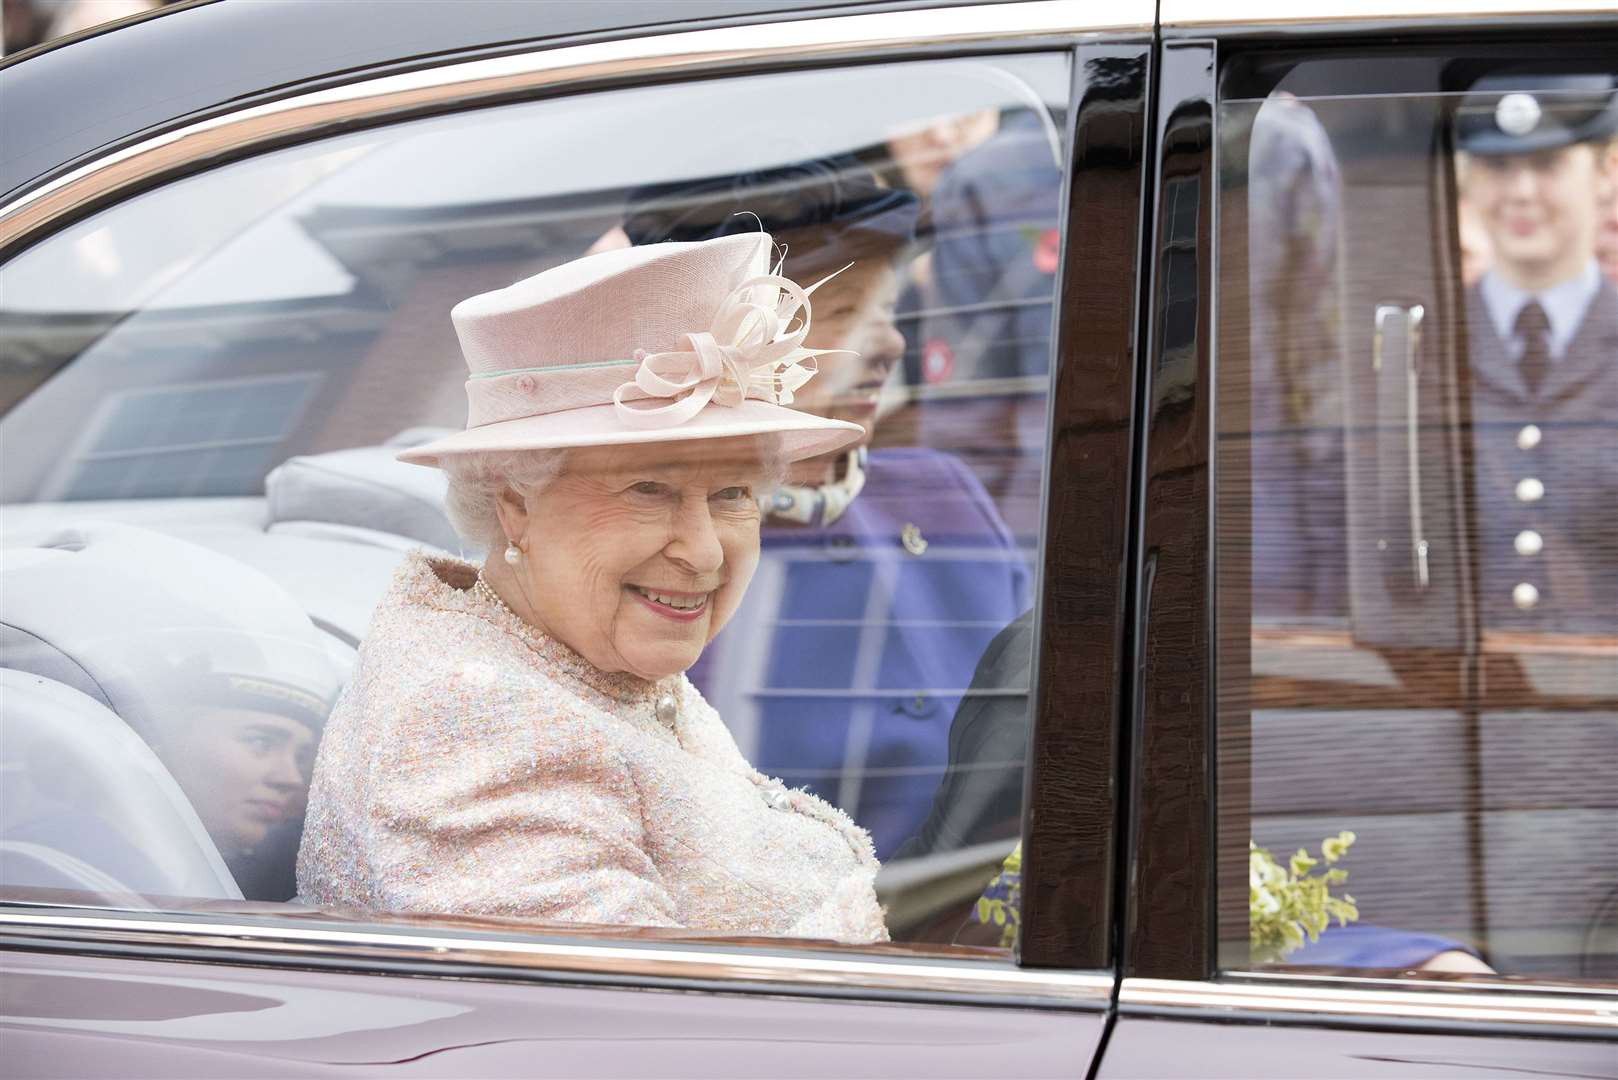 Her Majesty The Queen will visit Cambridge today